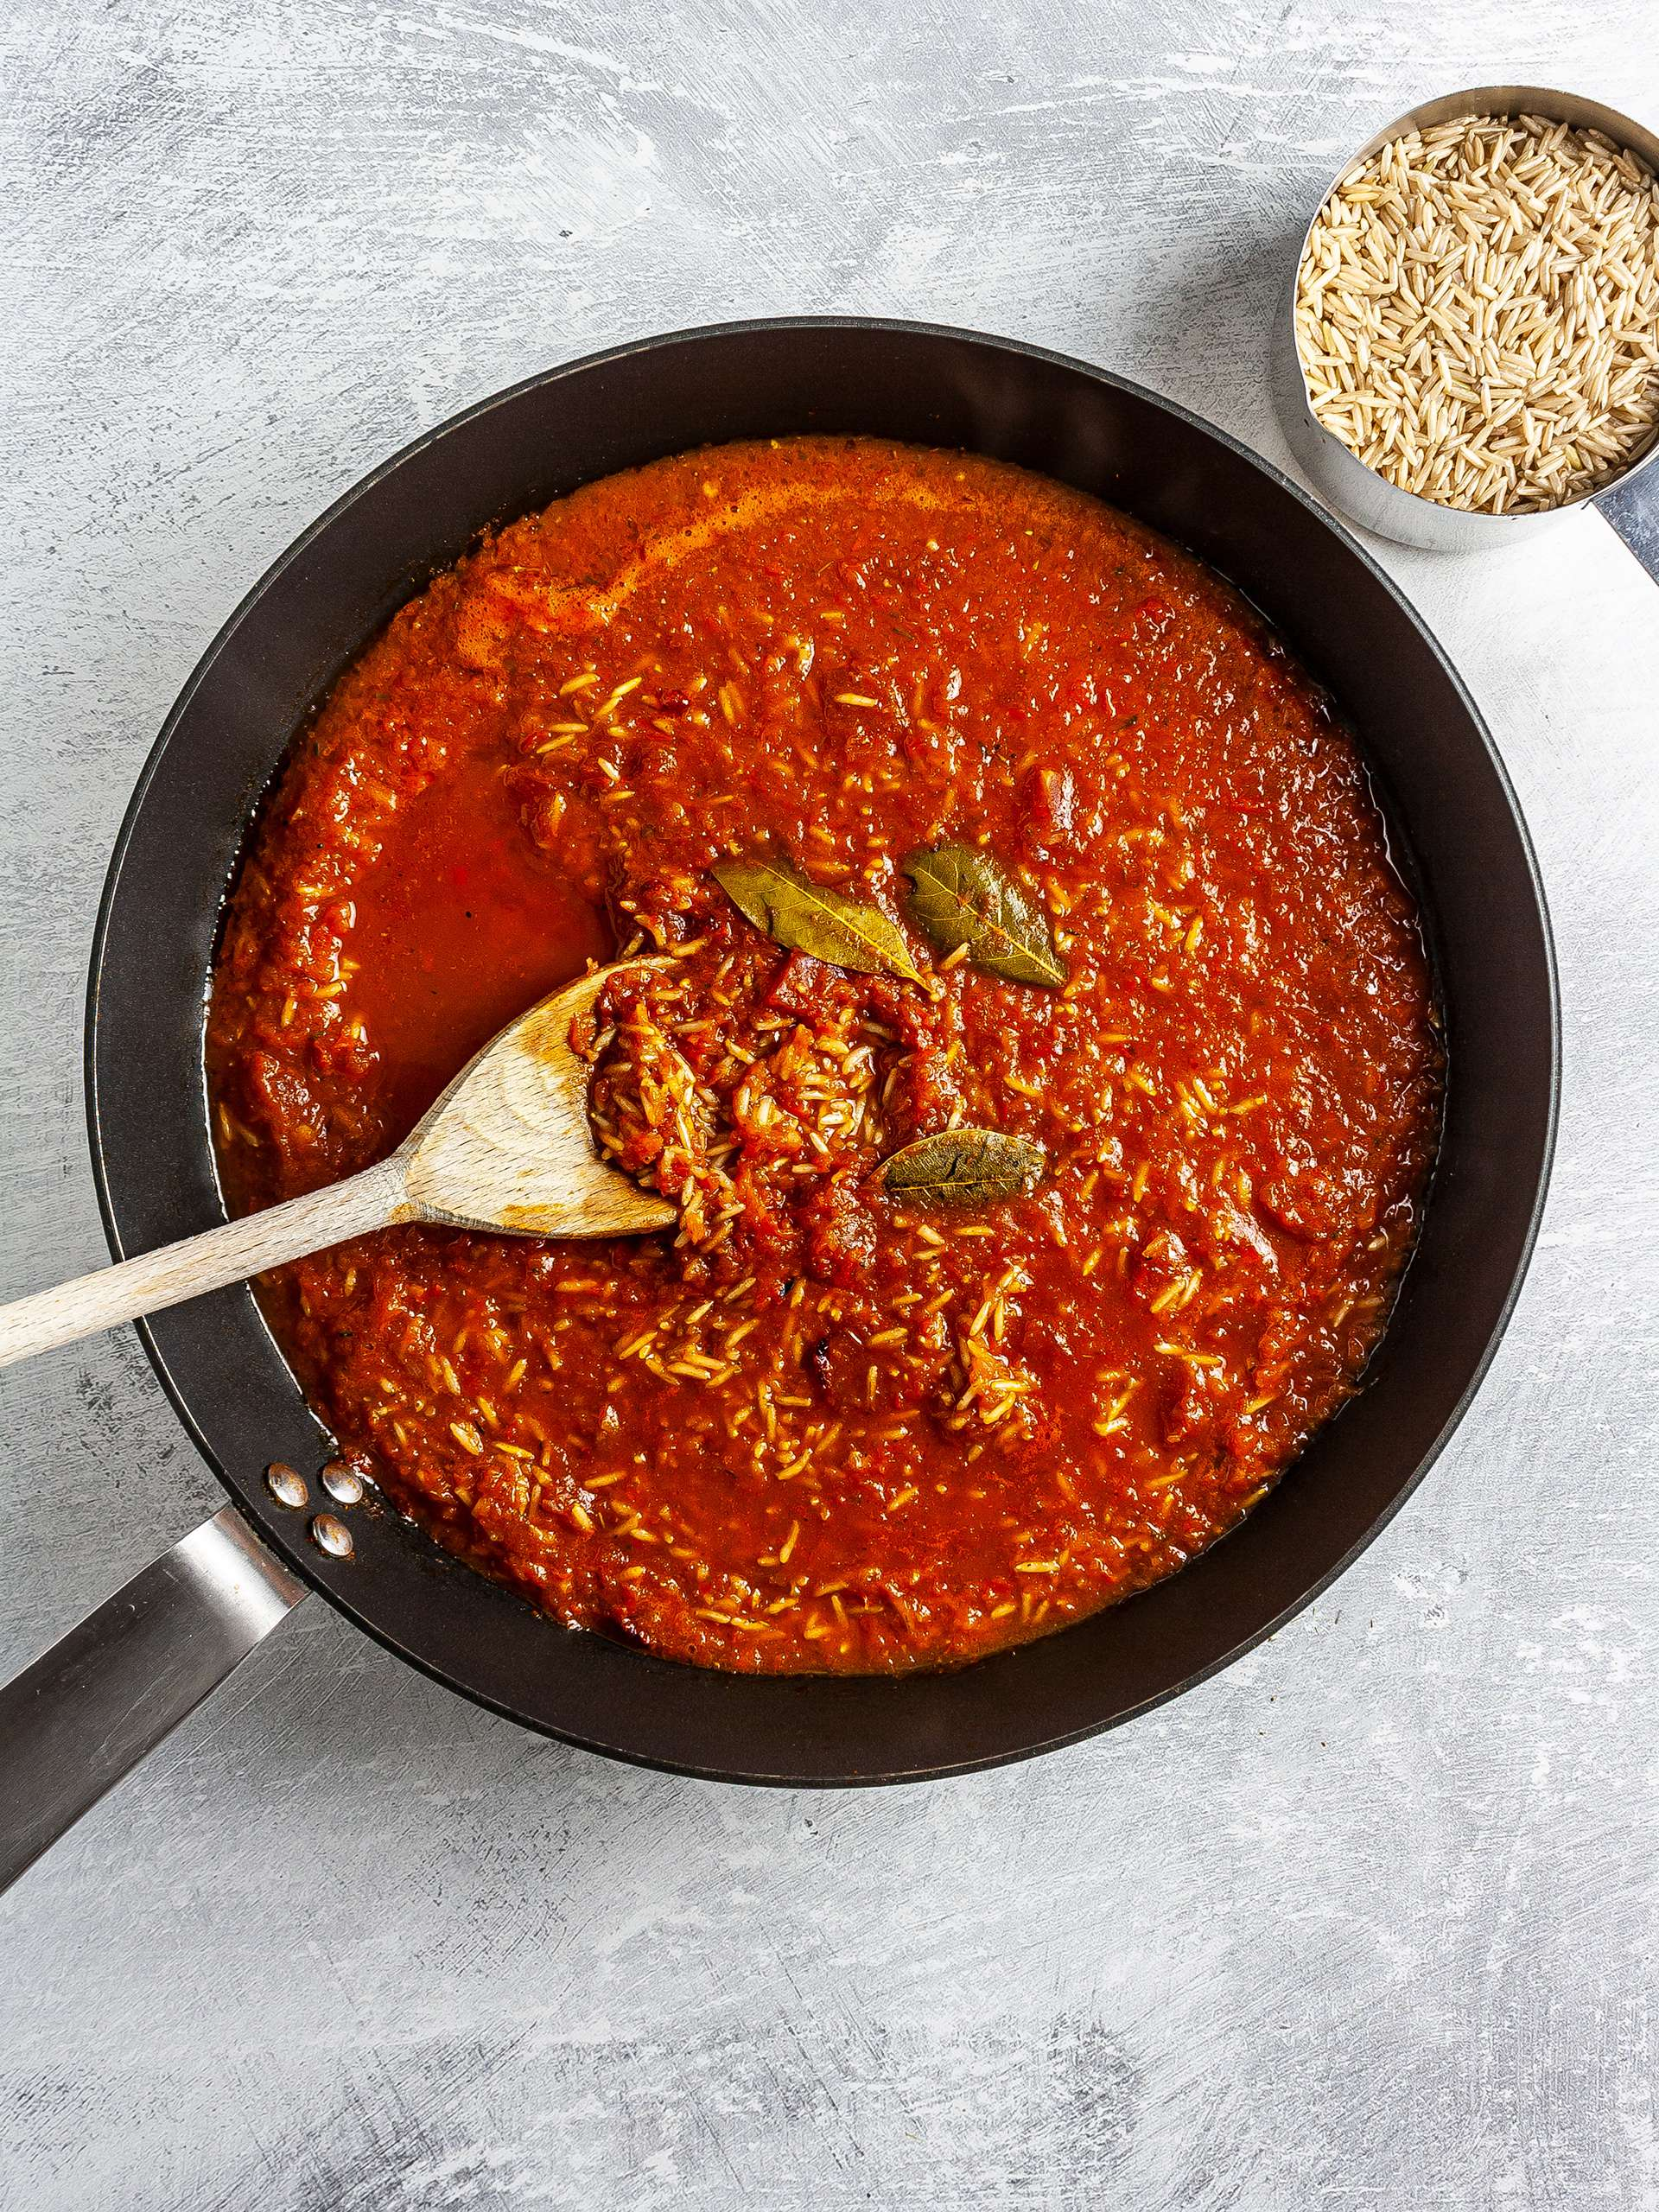 Rice cooking in tomato sauce